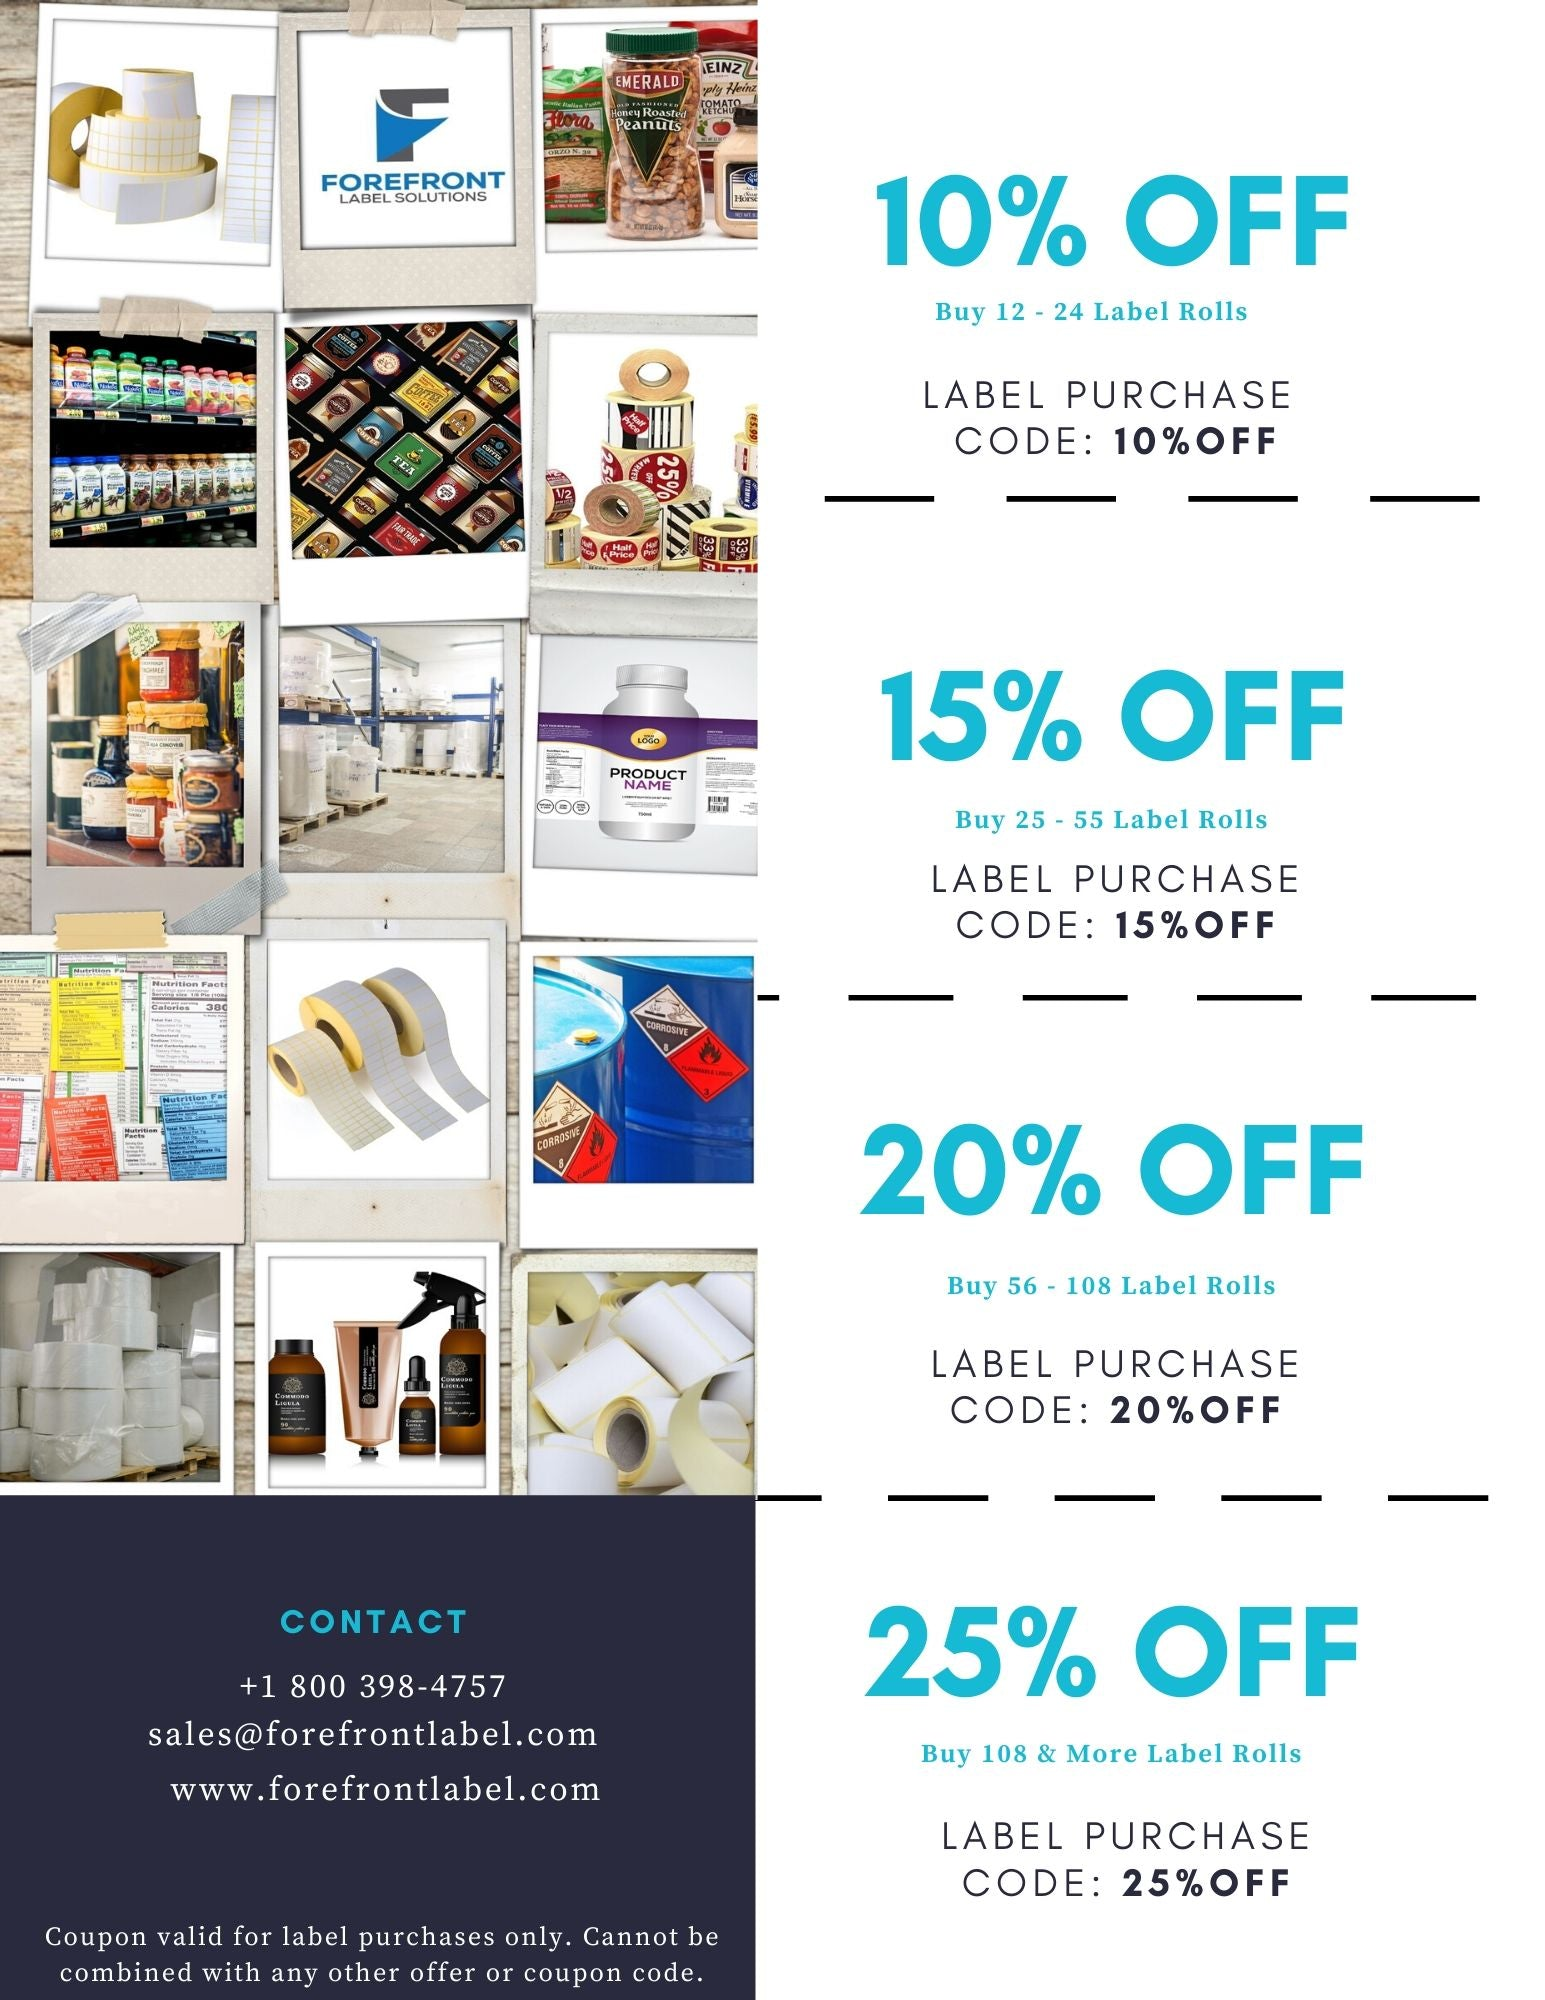 ForeFront Label Solutions - Coupons